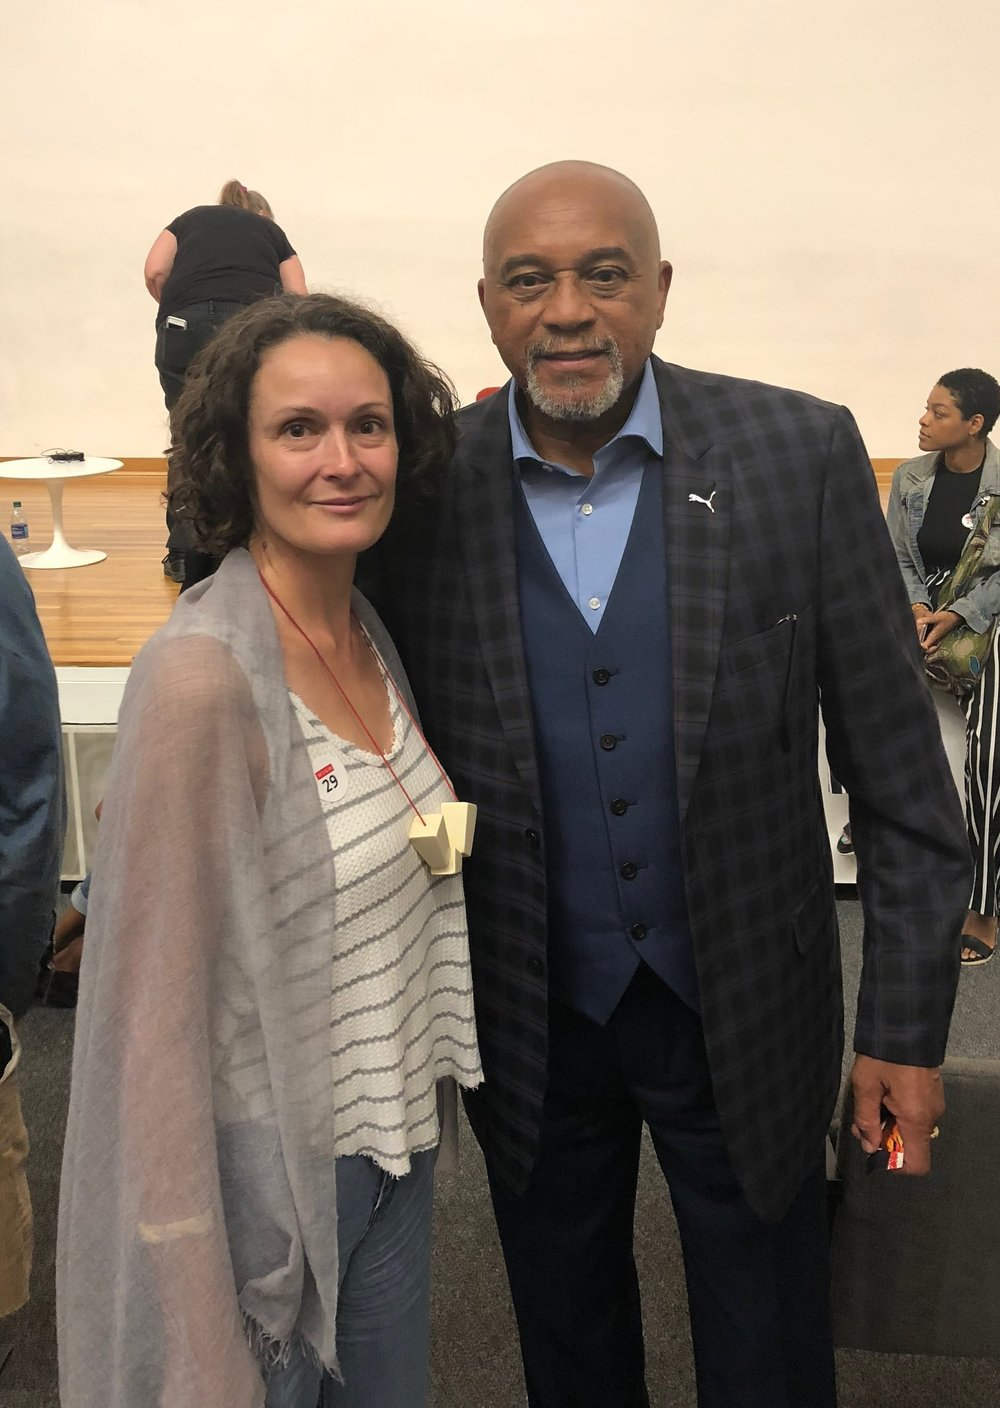 dr tommie smith atlanta emma j starr High talk.JPG